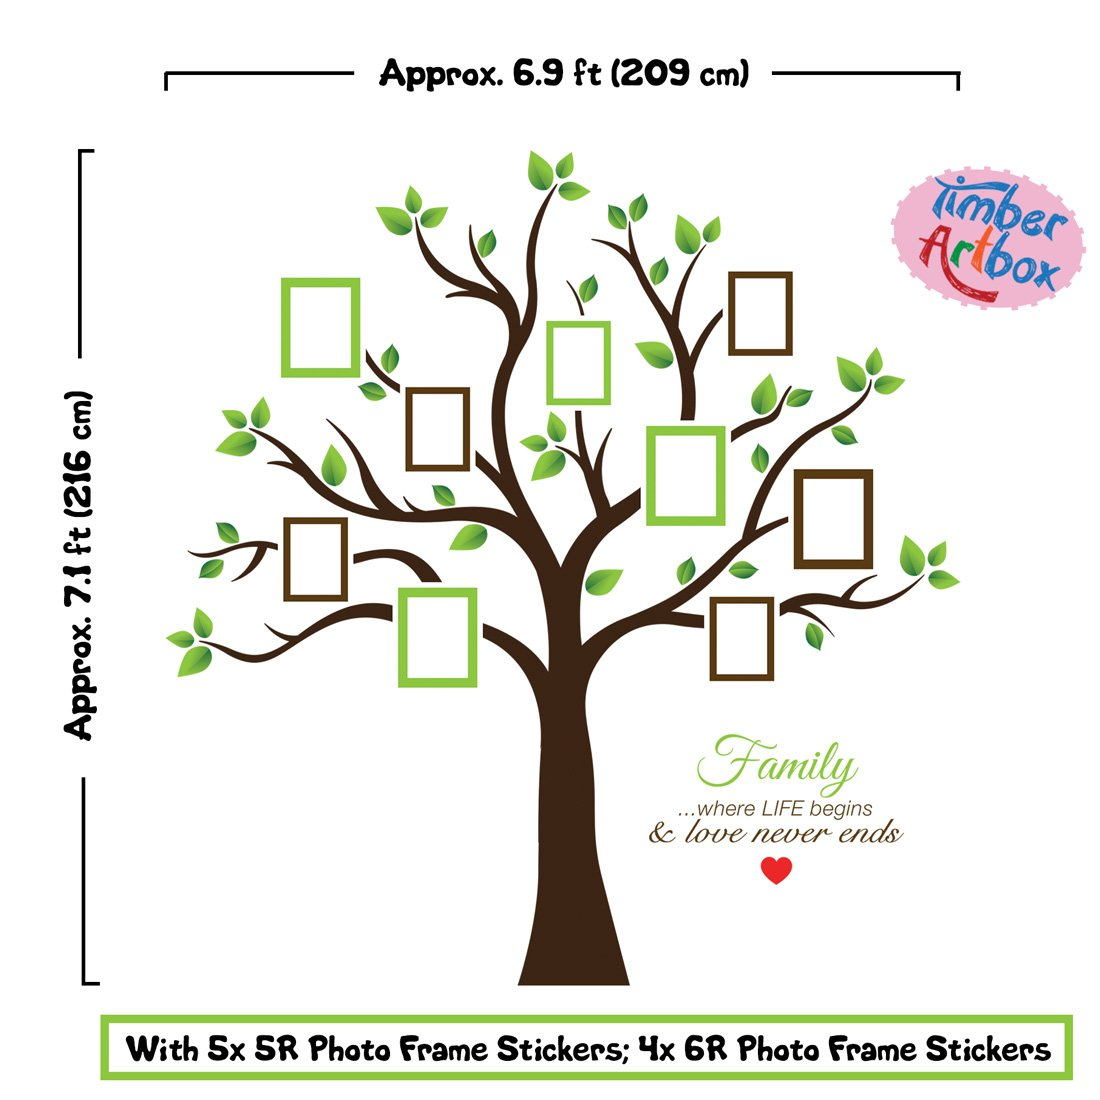 Timber Artbox Large Family Tree Photo Frames Wall Decal - The Sweetest Highlight of Your Home and Family by TIMBER ARTBOX (Image #4)